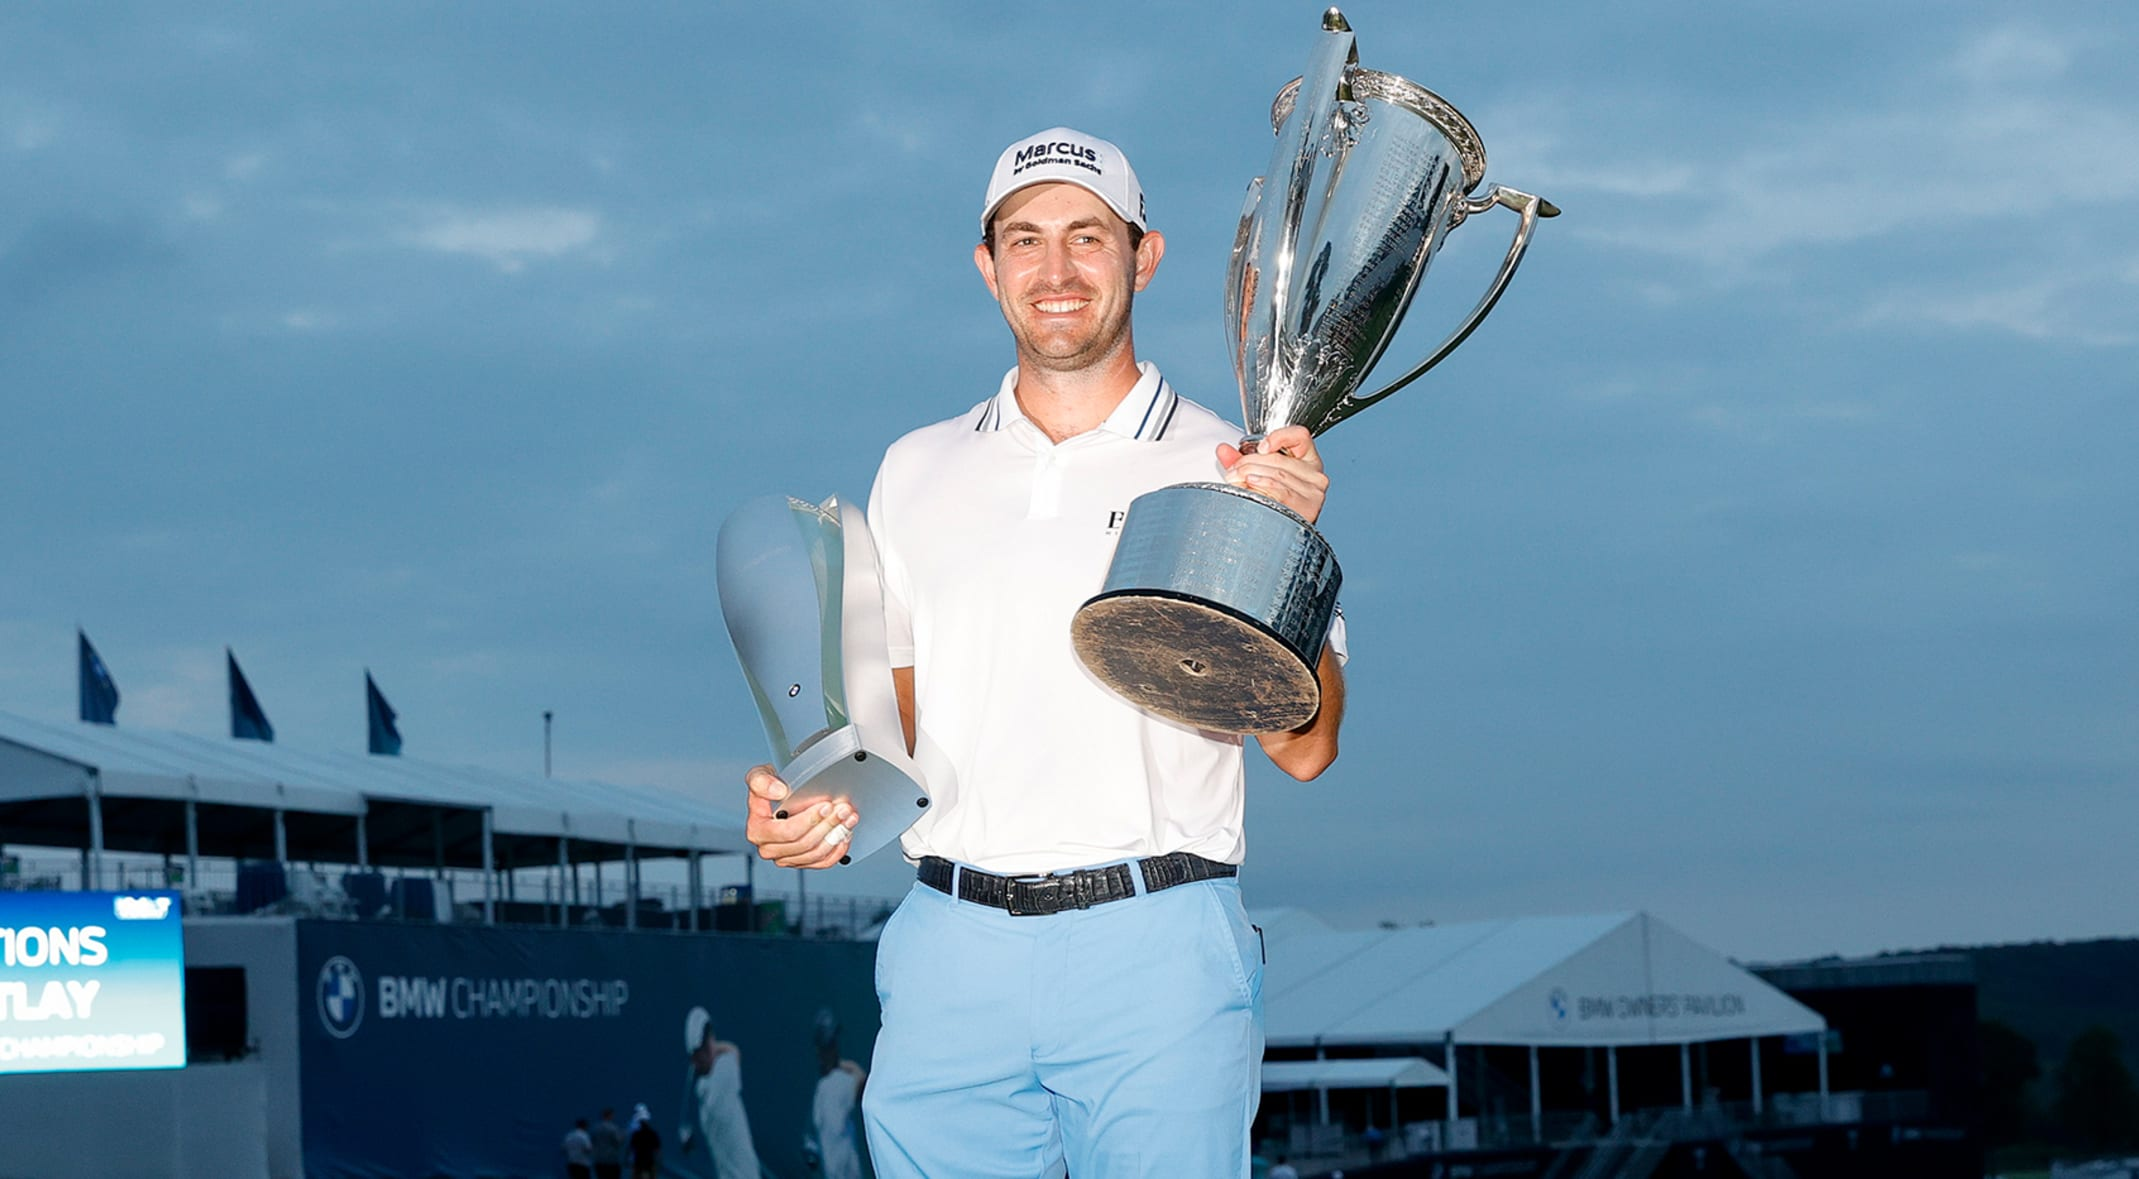 Patrick Cantlay eyes FedExCup after epic BMW Championship win